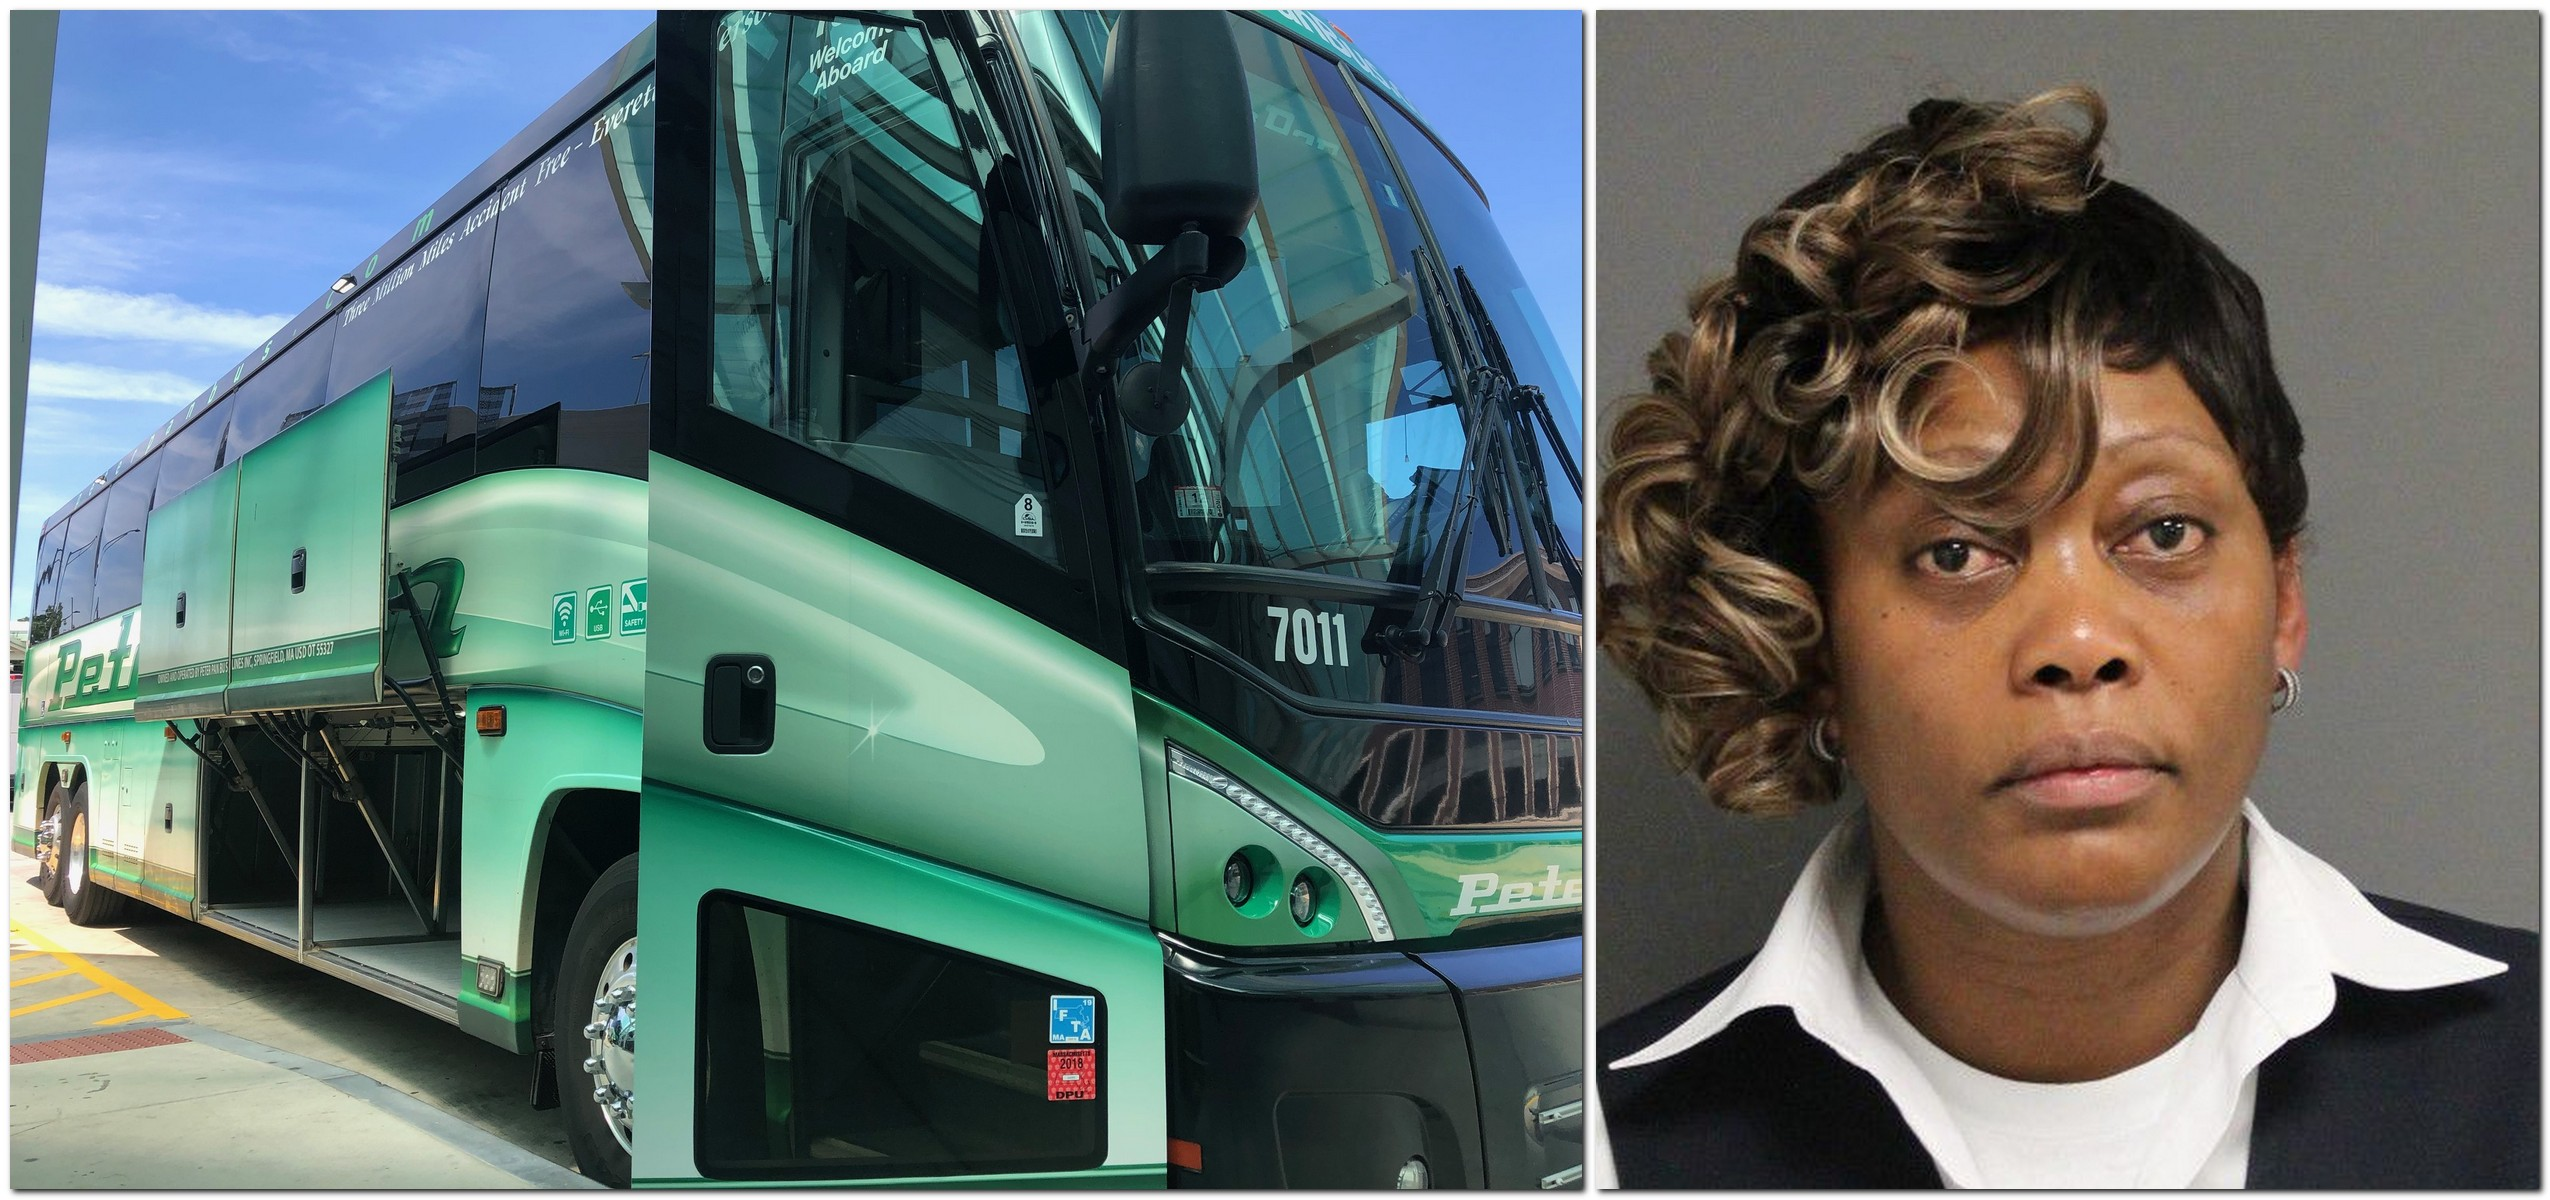 Peter Pan bus driver from N.J. denies locking woman in luggage compartment